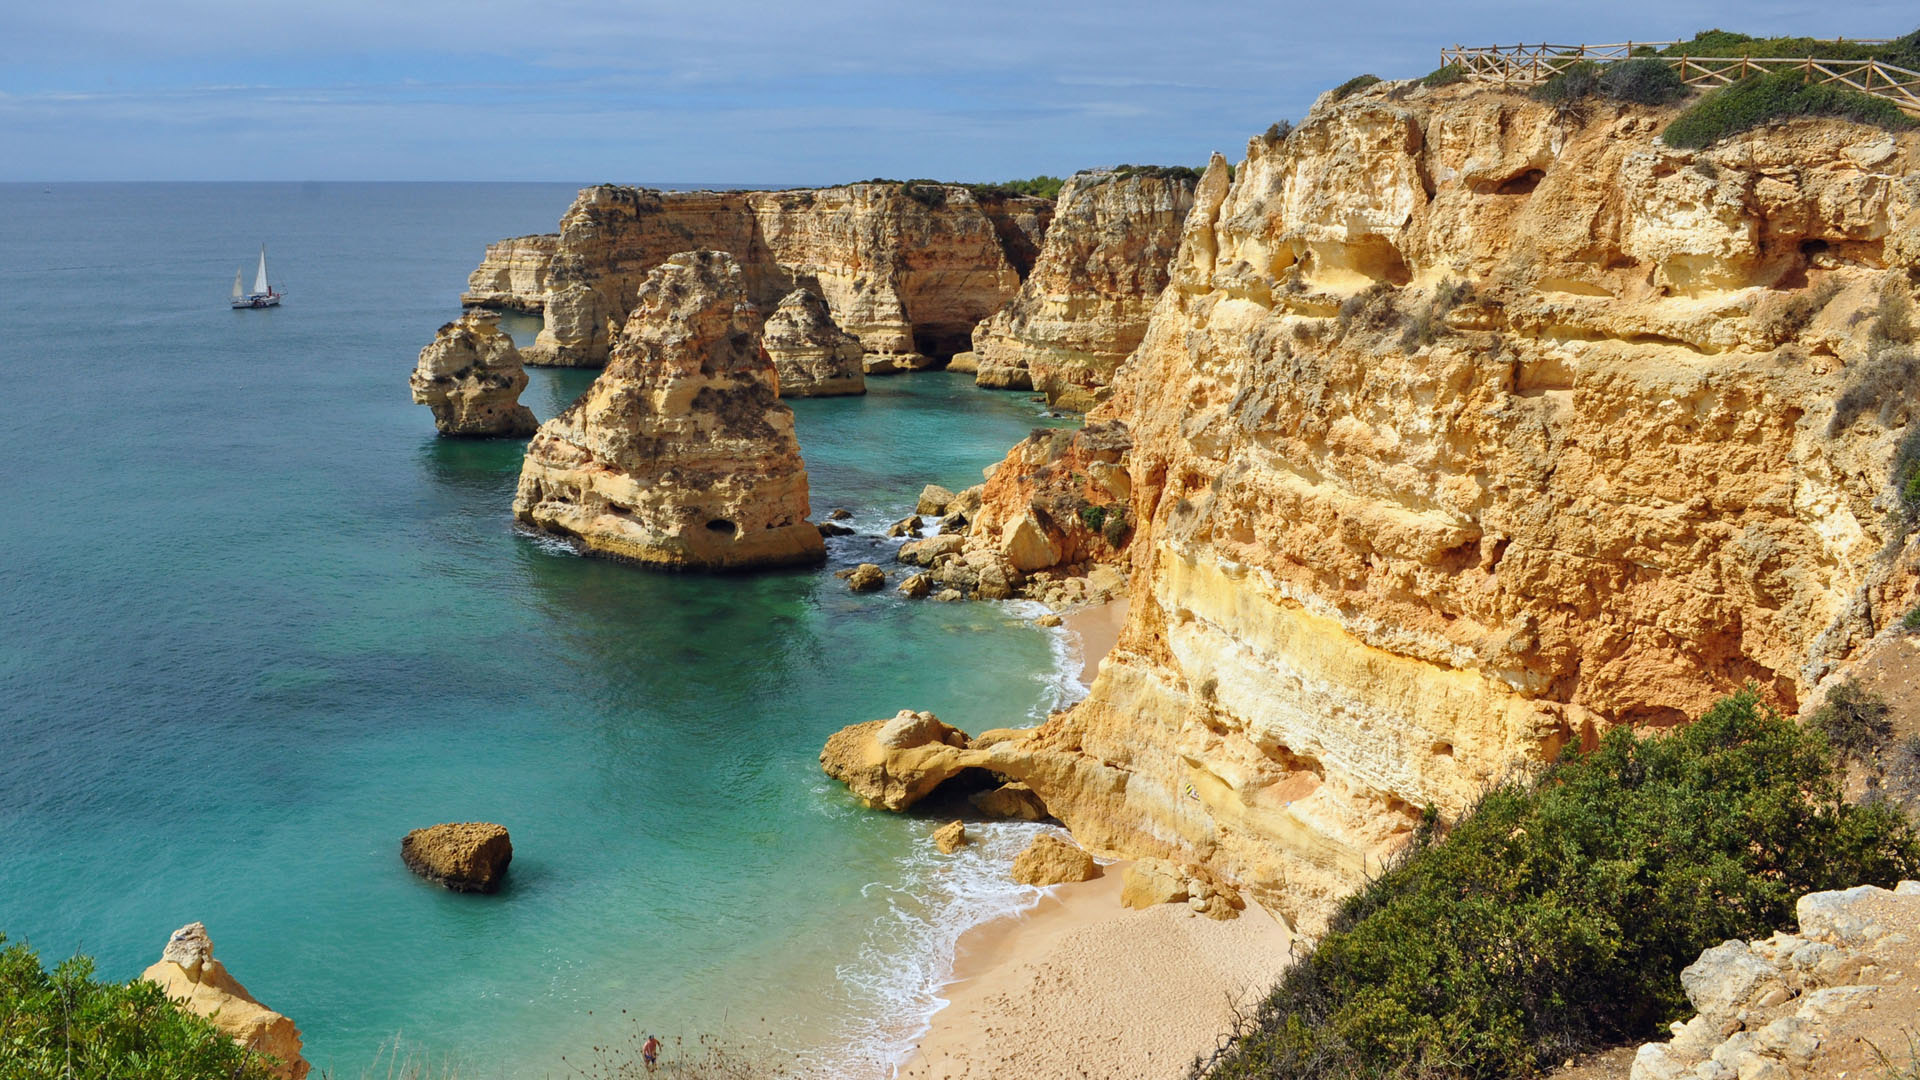 458/Photos-Group/Destinations/5-jupiter-albufeira.jpg